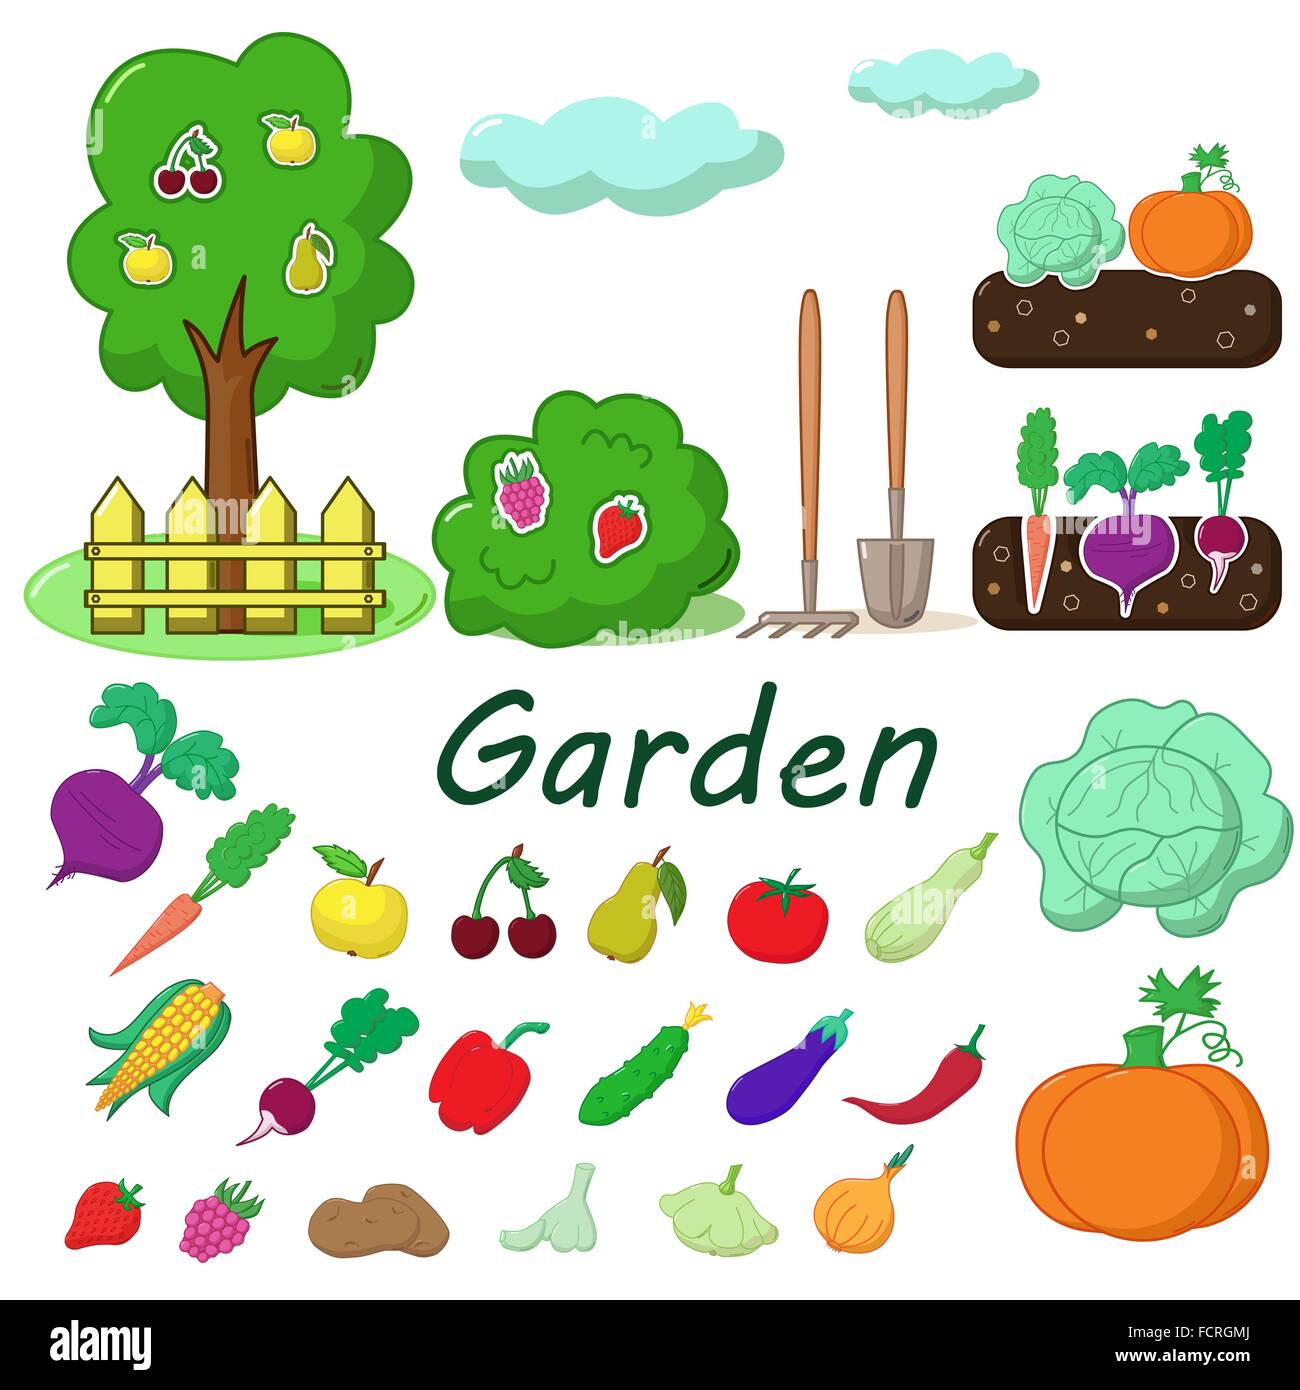 Garden with some fruits and vegetables - Vector concept - Stock Vector